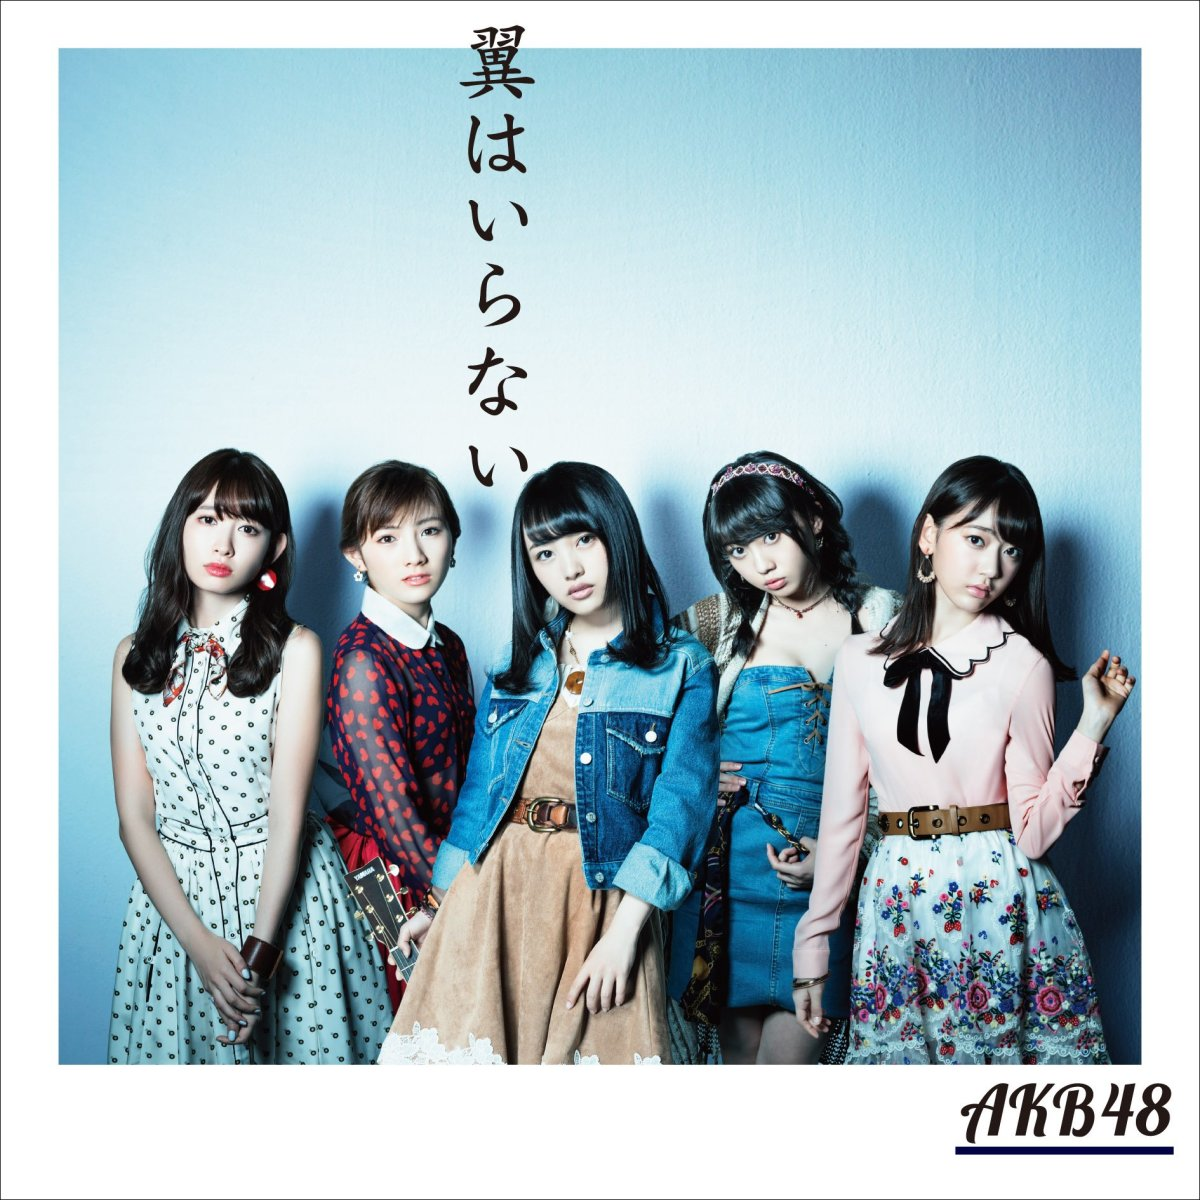 a-review-and-analysis-of-the-song-tsubasa-wa-iranai-the-44th-single-by-japanese-pop-music-group-akb48